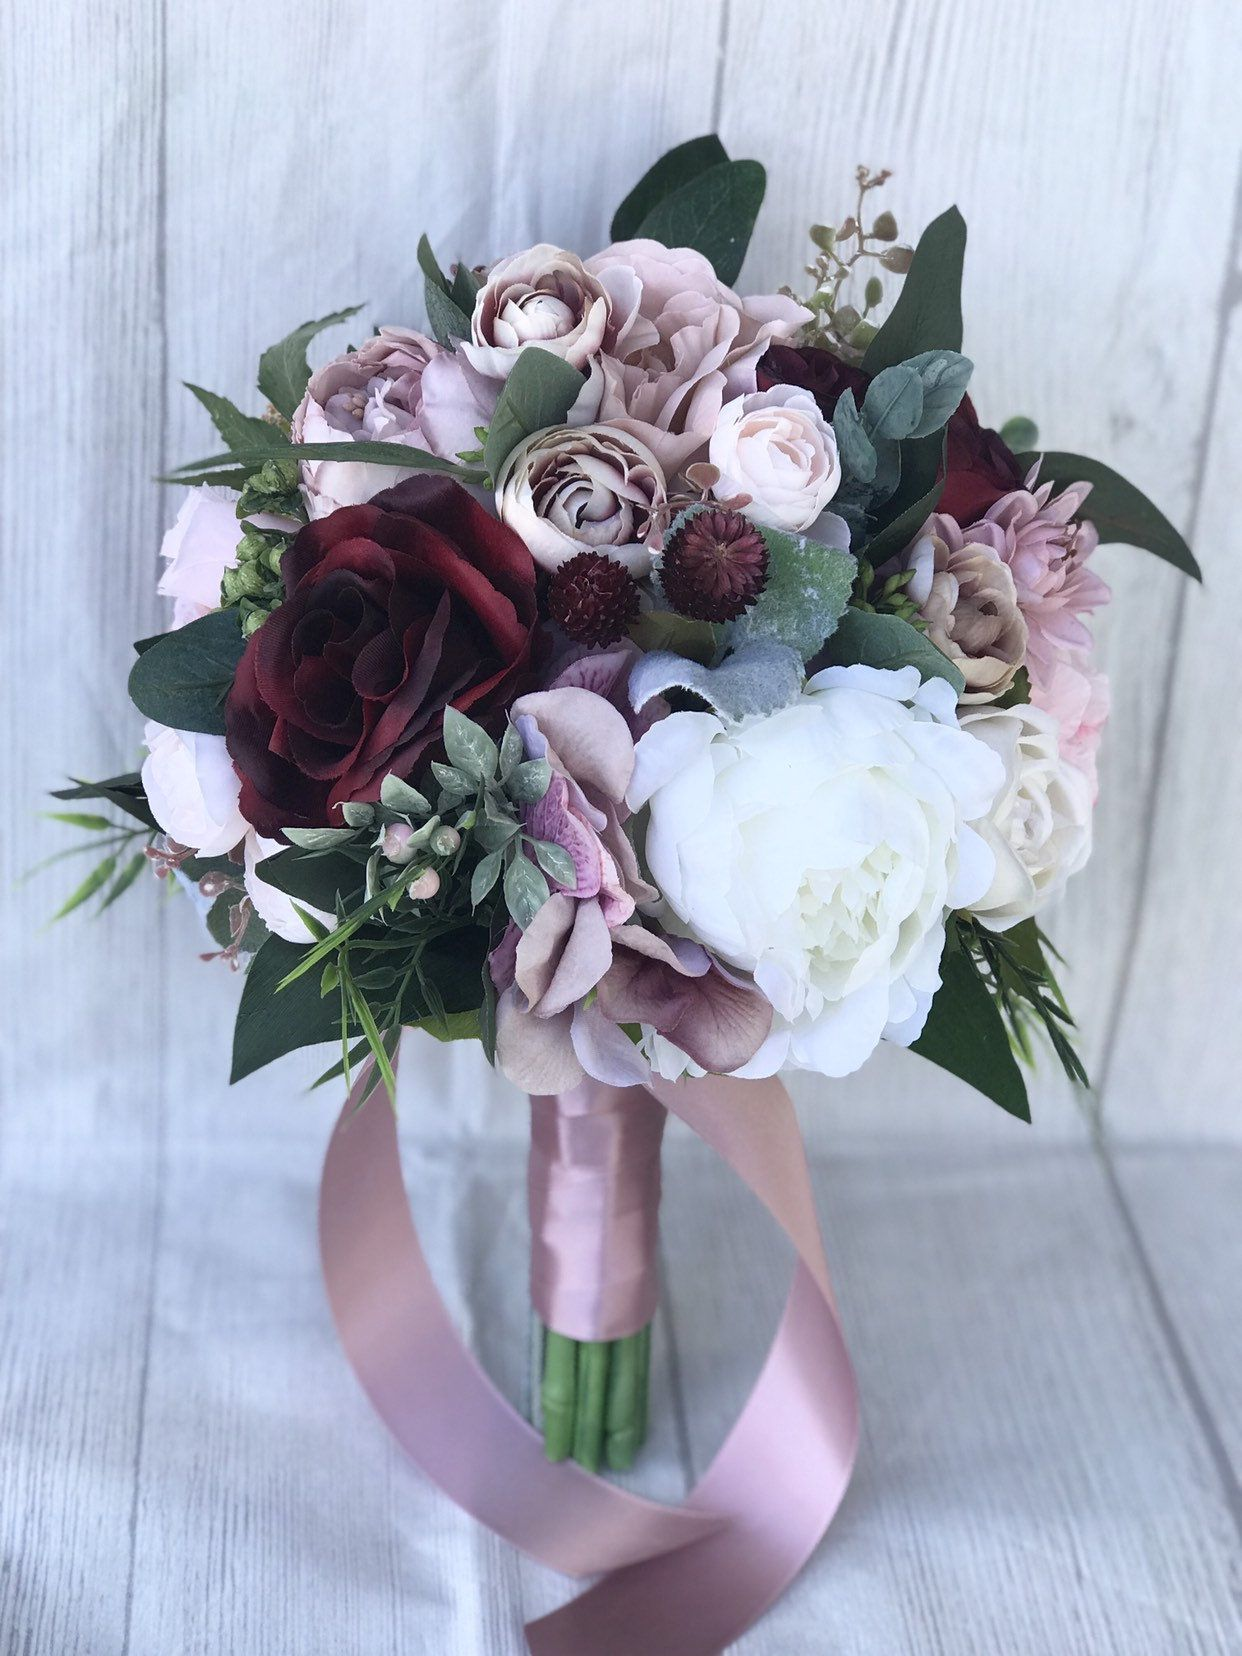 Dusty Rose Bouquet Blush And Dusty Pink Bouquet Mauve And Etsy In 2020 Rose Bridal Bouquet Burgundy Bouquet Pink Bouquet